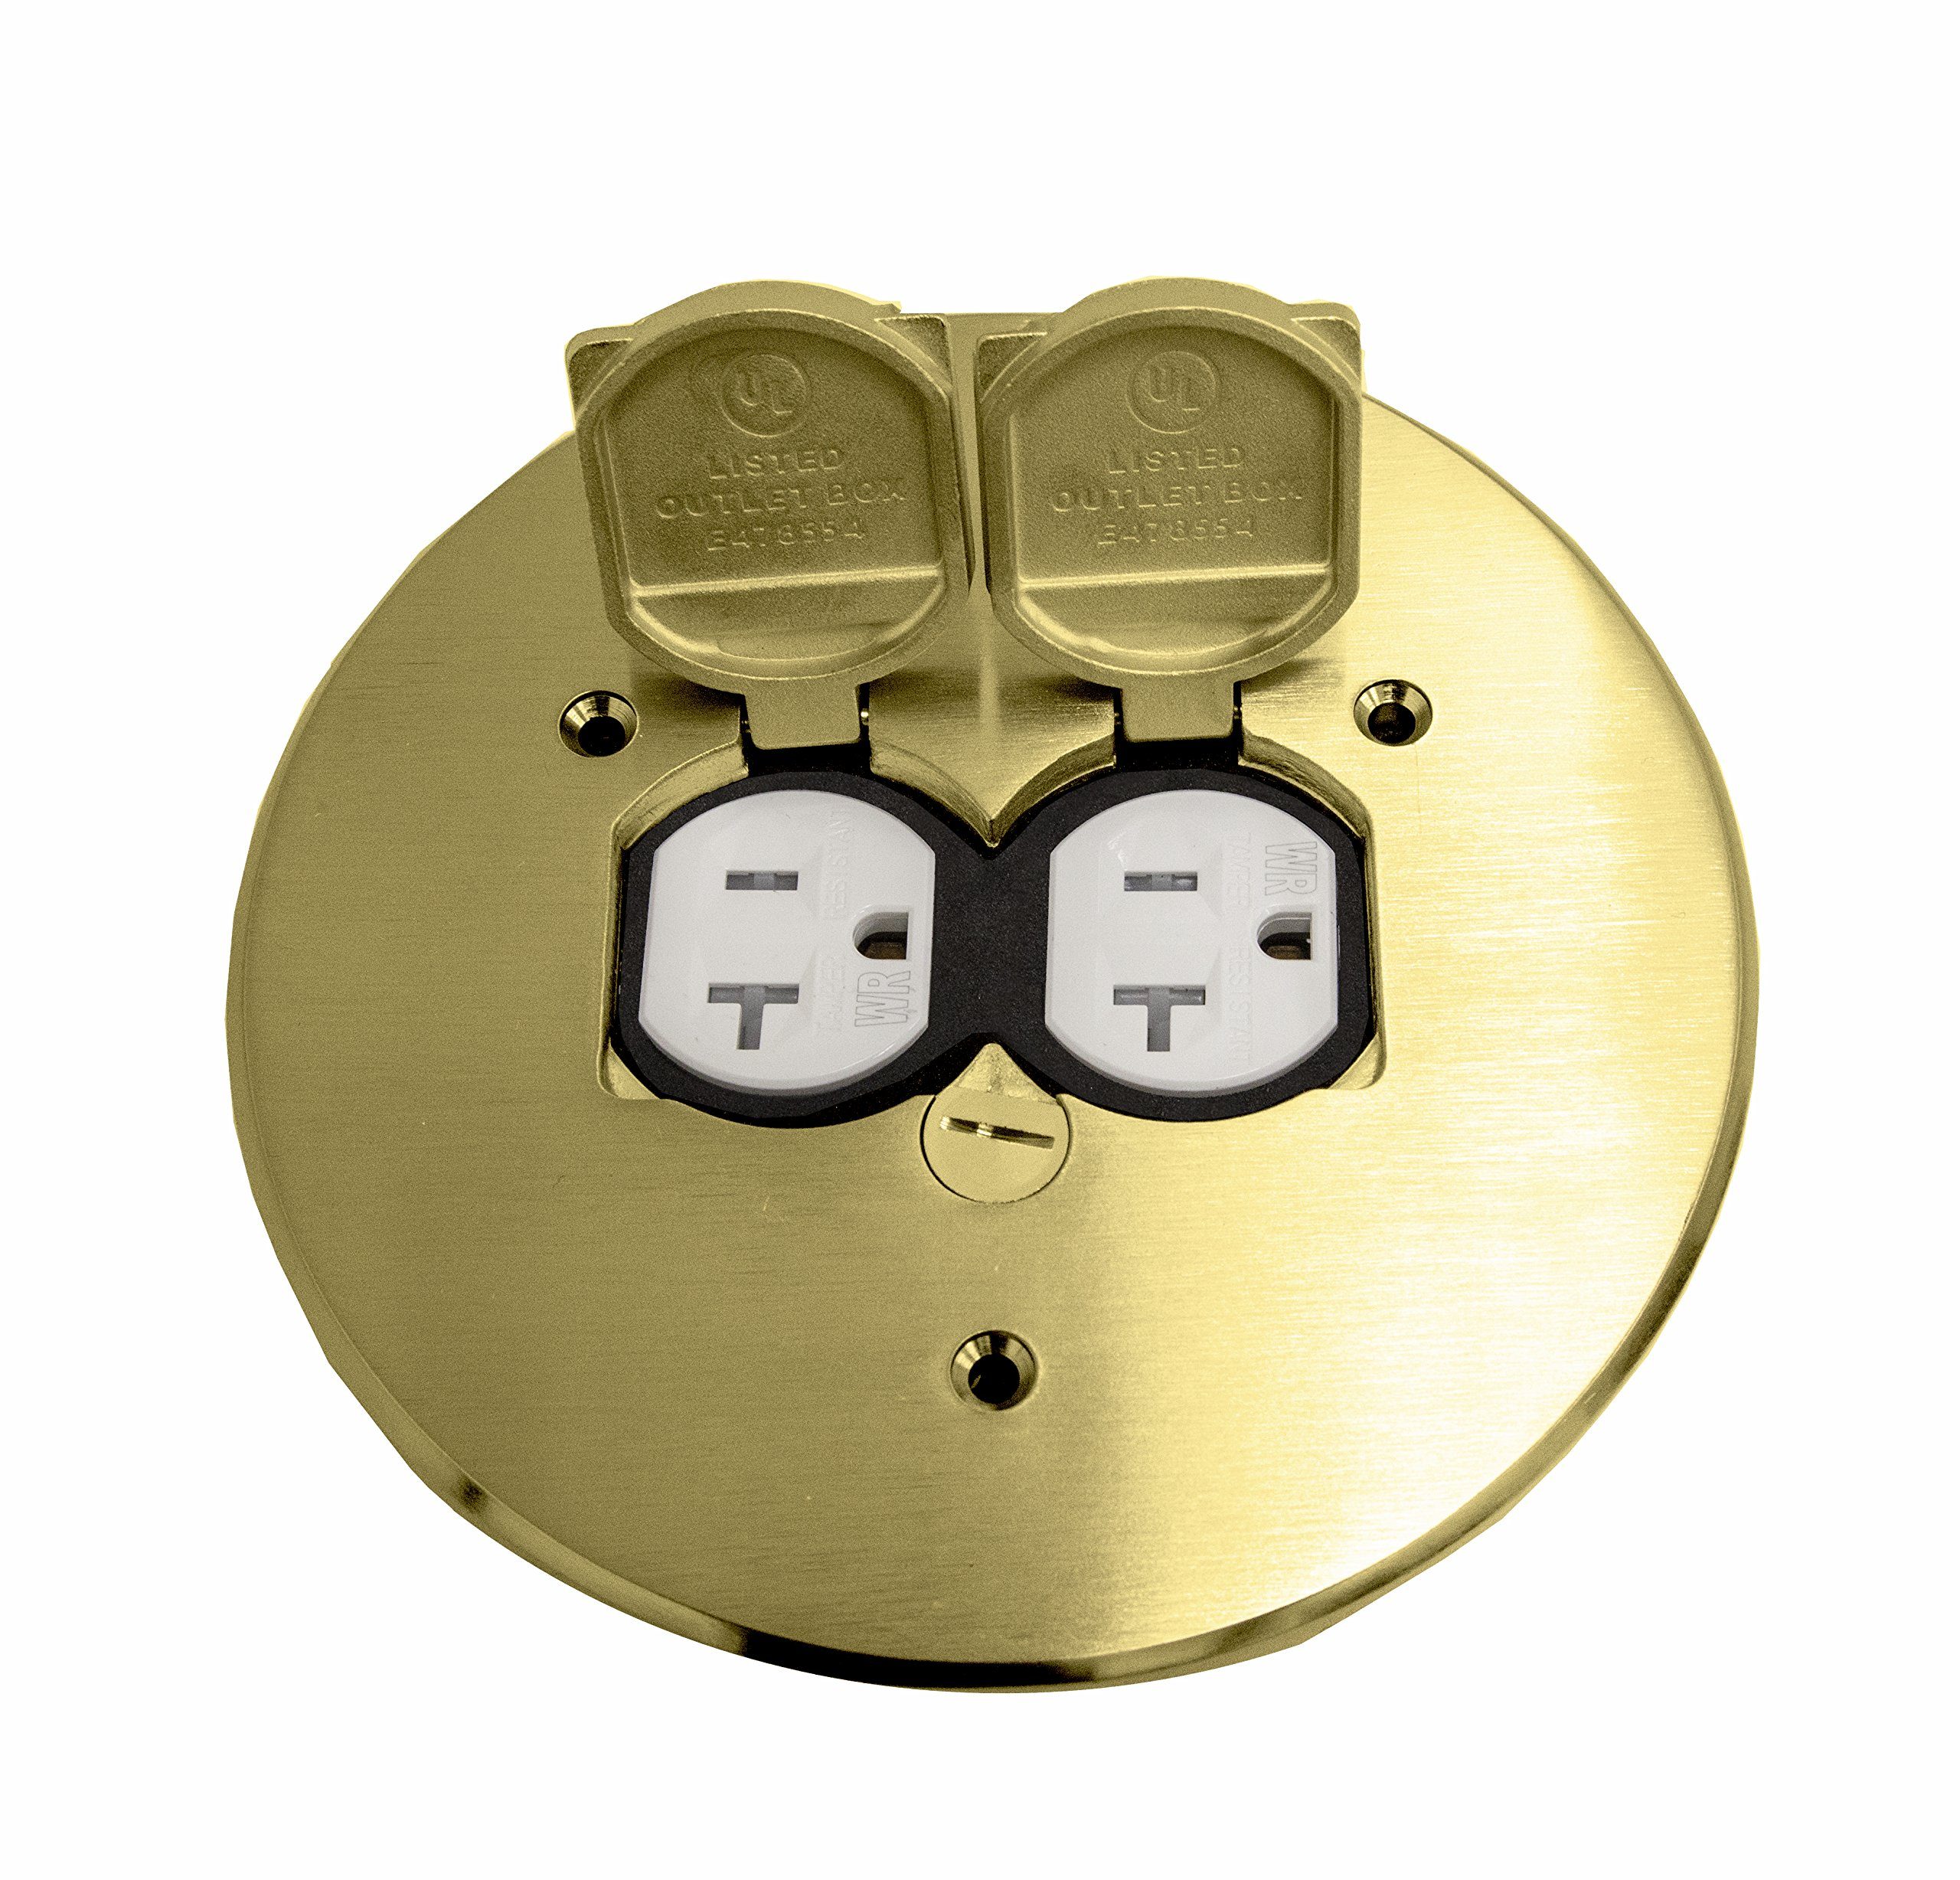 Enerlites 975517-C 5.75'' Brass Dual Flip Lid Cover by Electrical Floor Box Lid, 20A Duplex Tamper-Weather Resistant Outlet, UL Listed